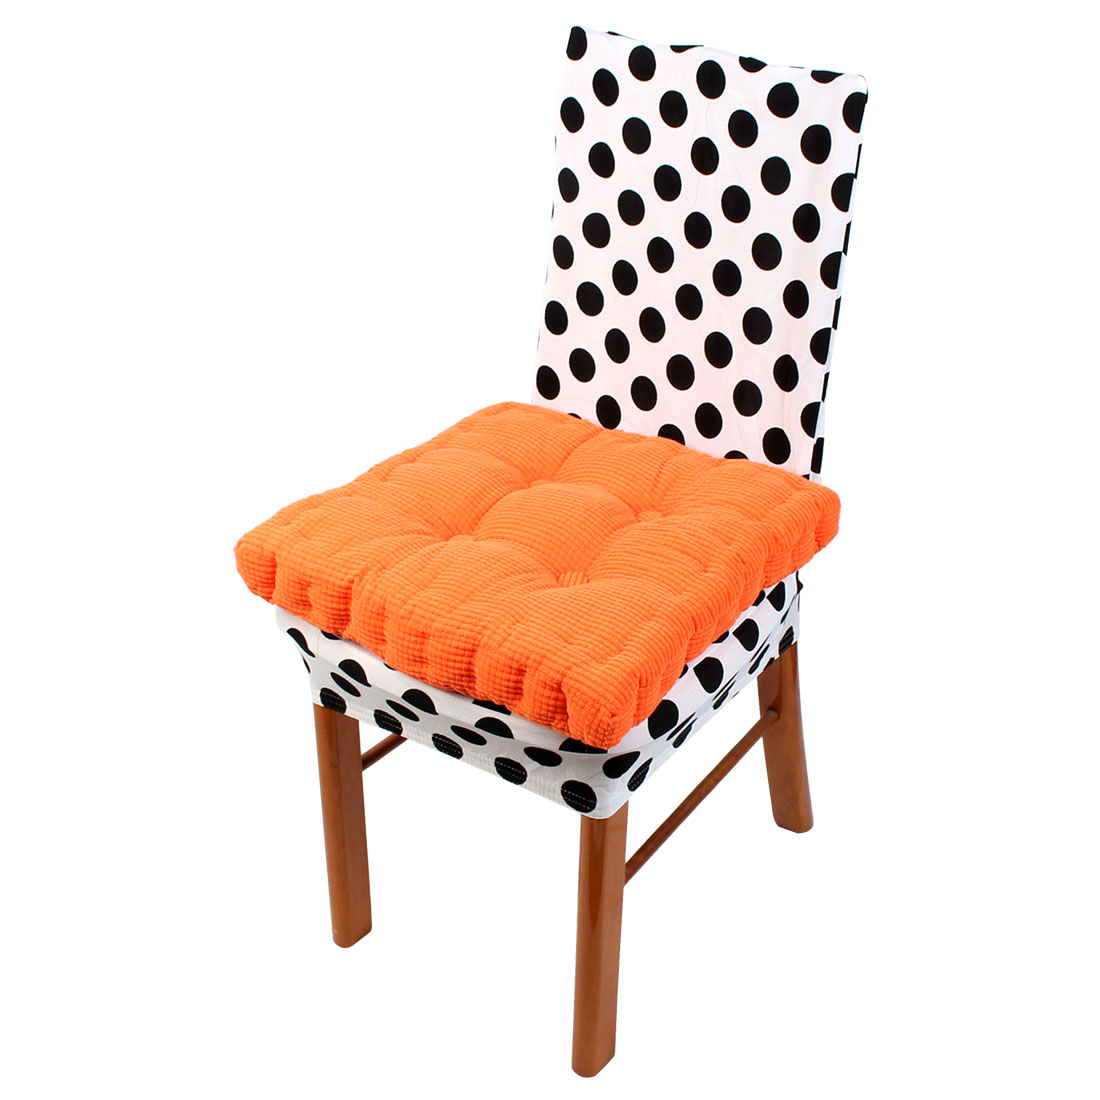 Home Office Corduroy Square Shaped Sofa Floor Chair Seat Cushion Pad Orange